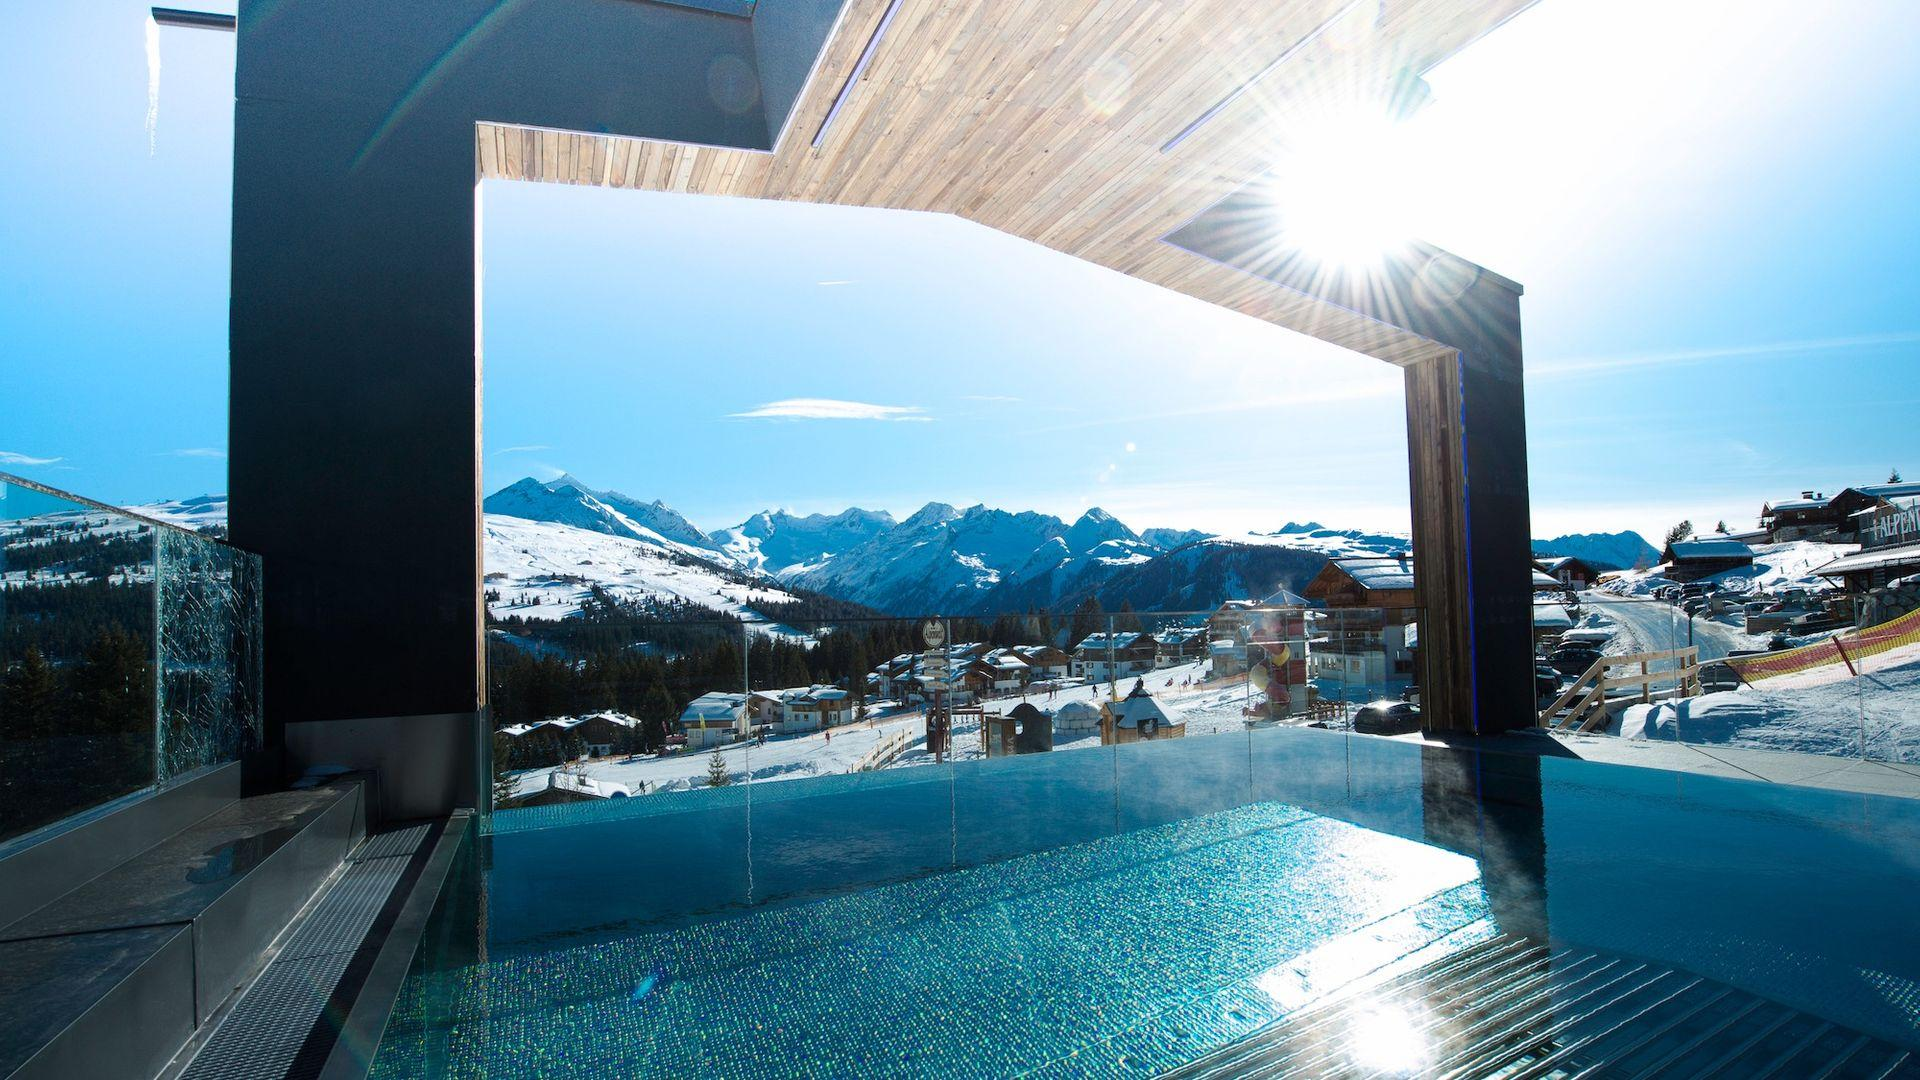 4*S Alpenwelt Resort